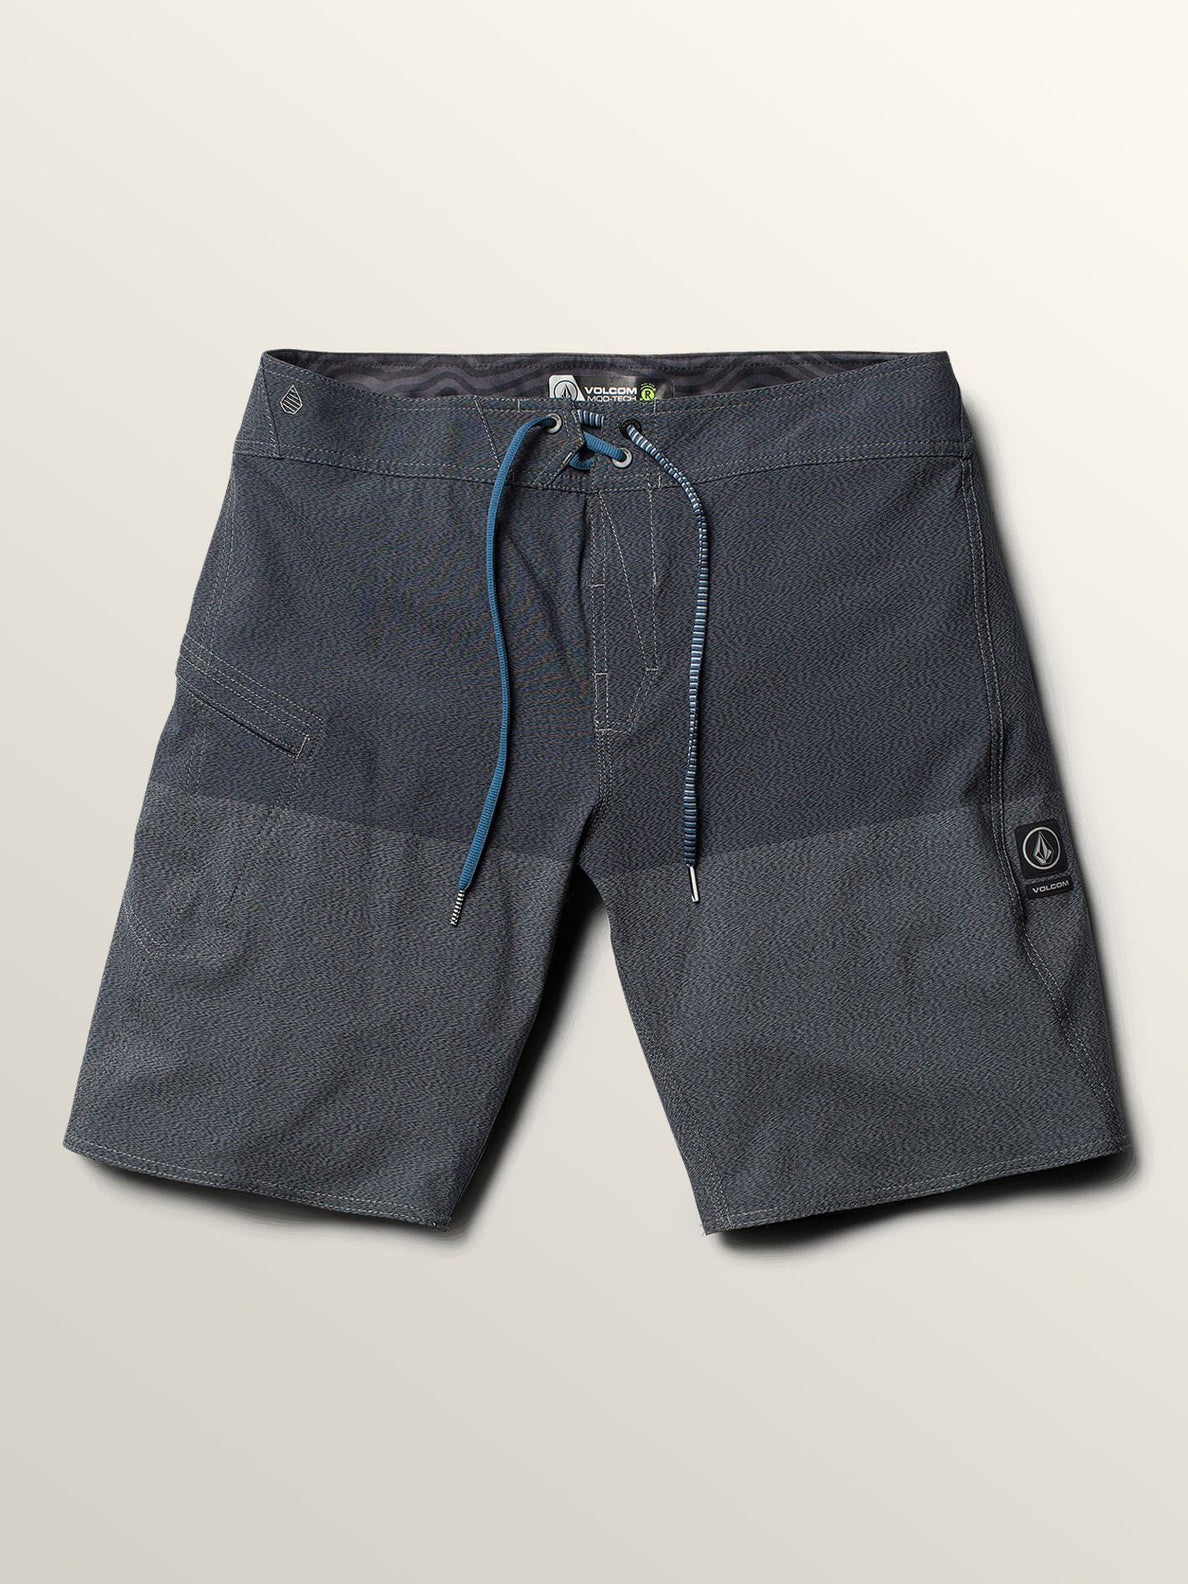 Lido Heather Mod Boardshorts In Smokey Blue, Second Alternate View